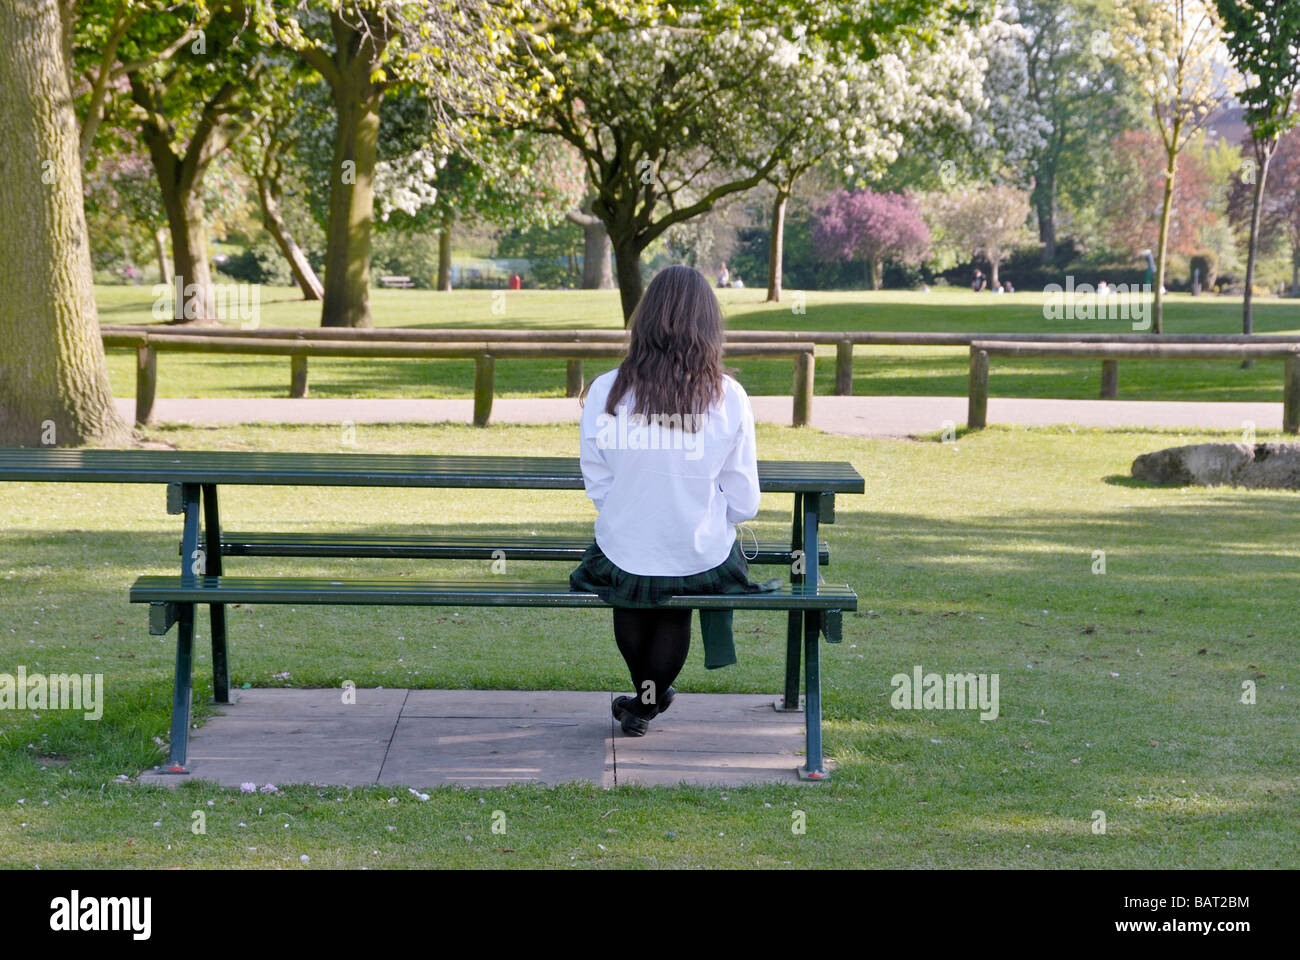 A Girl Sitting On A Bench Lonely The Image Kid Has It